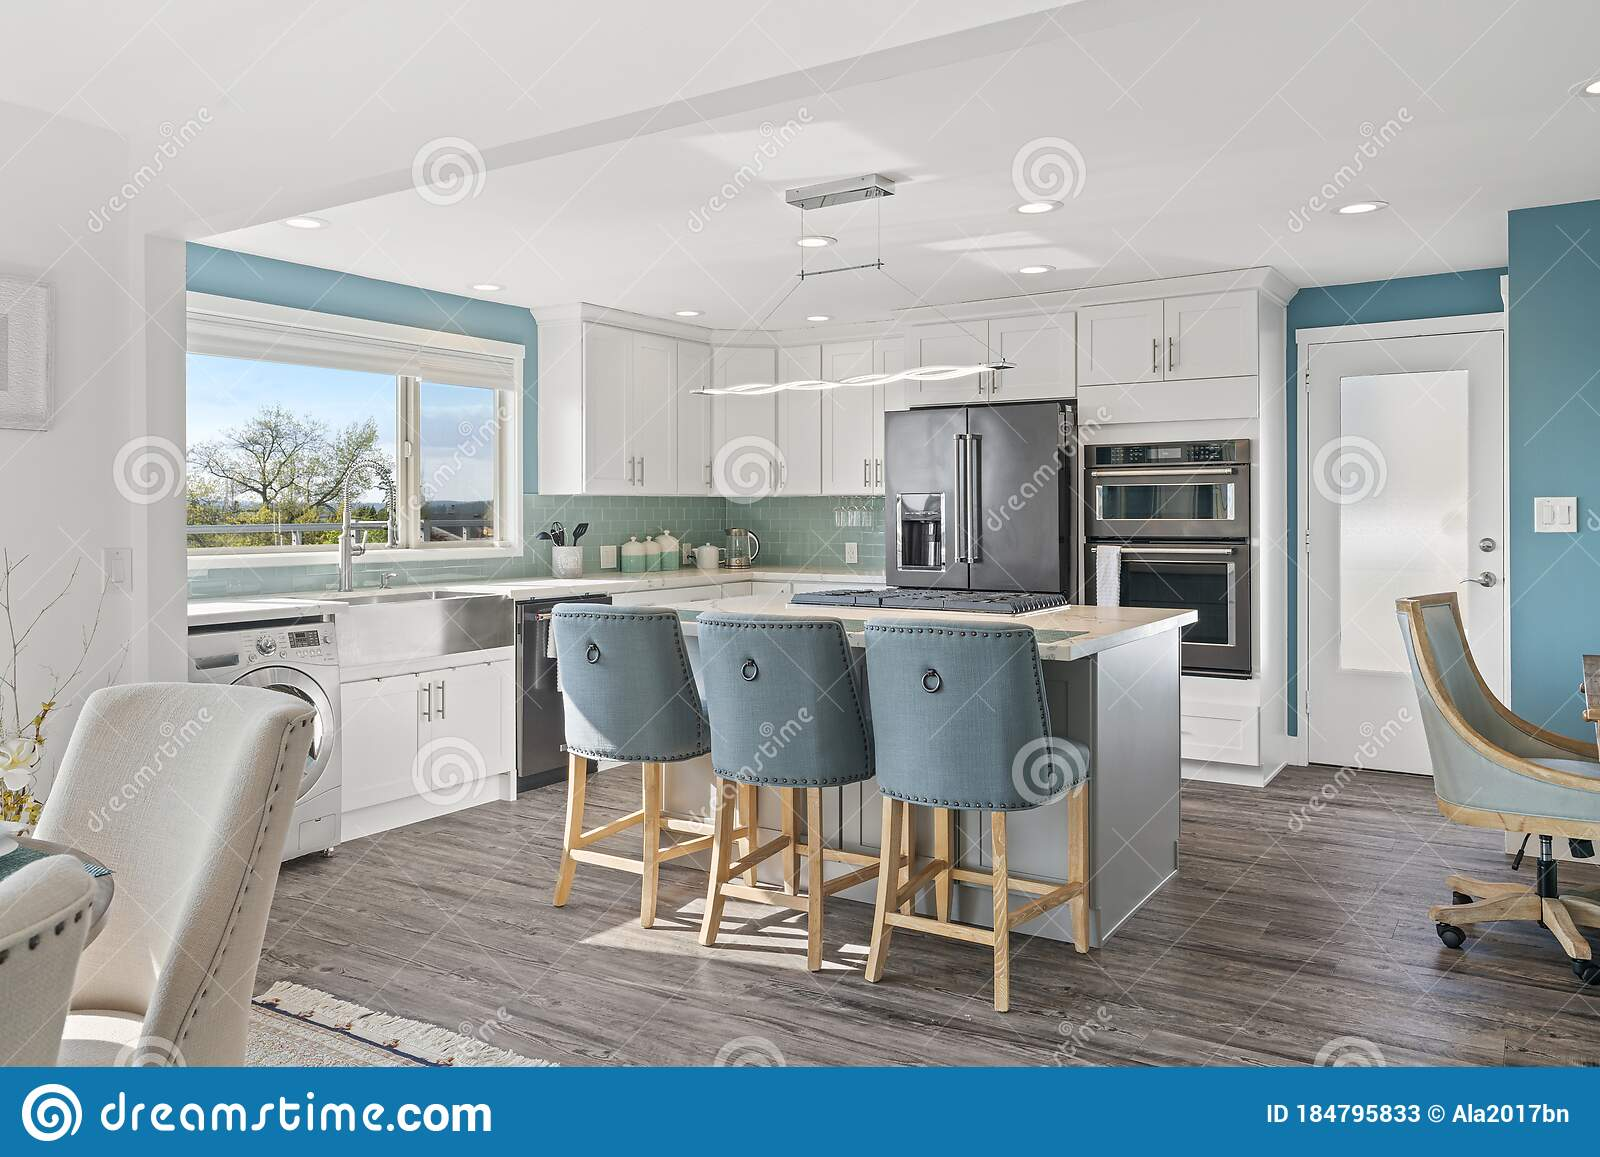 Picture of: White Modern Kitchen Interior With Navy Blue Accents Stock Image Image Of Modern Oven 184795833